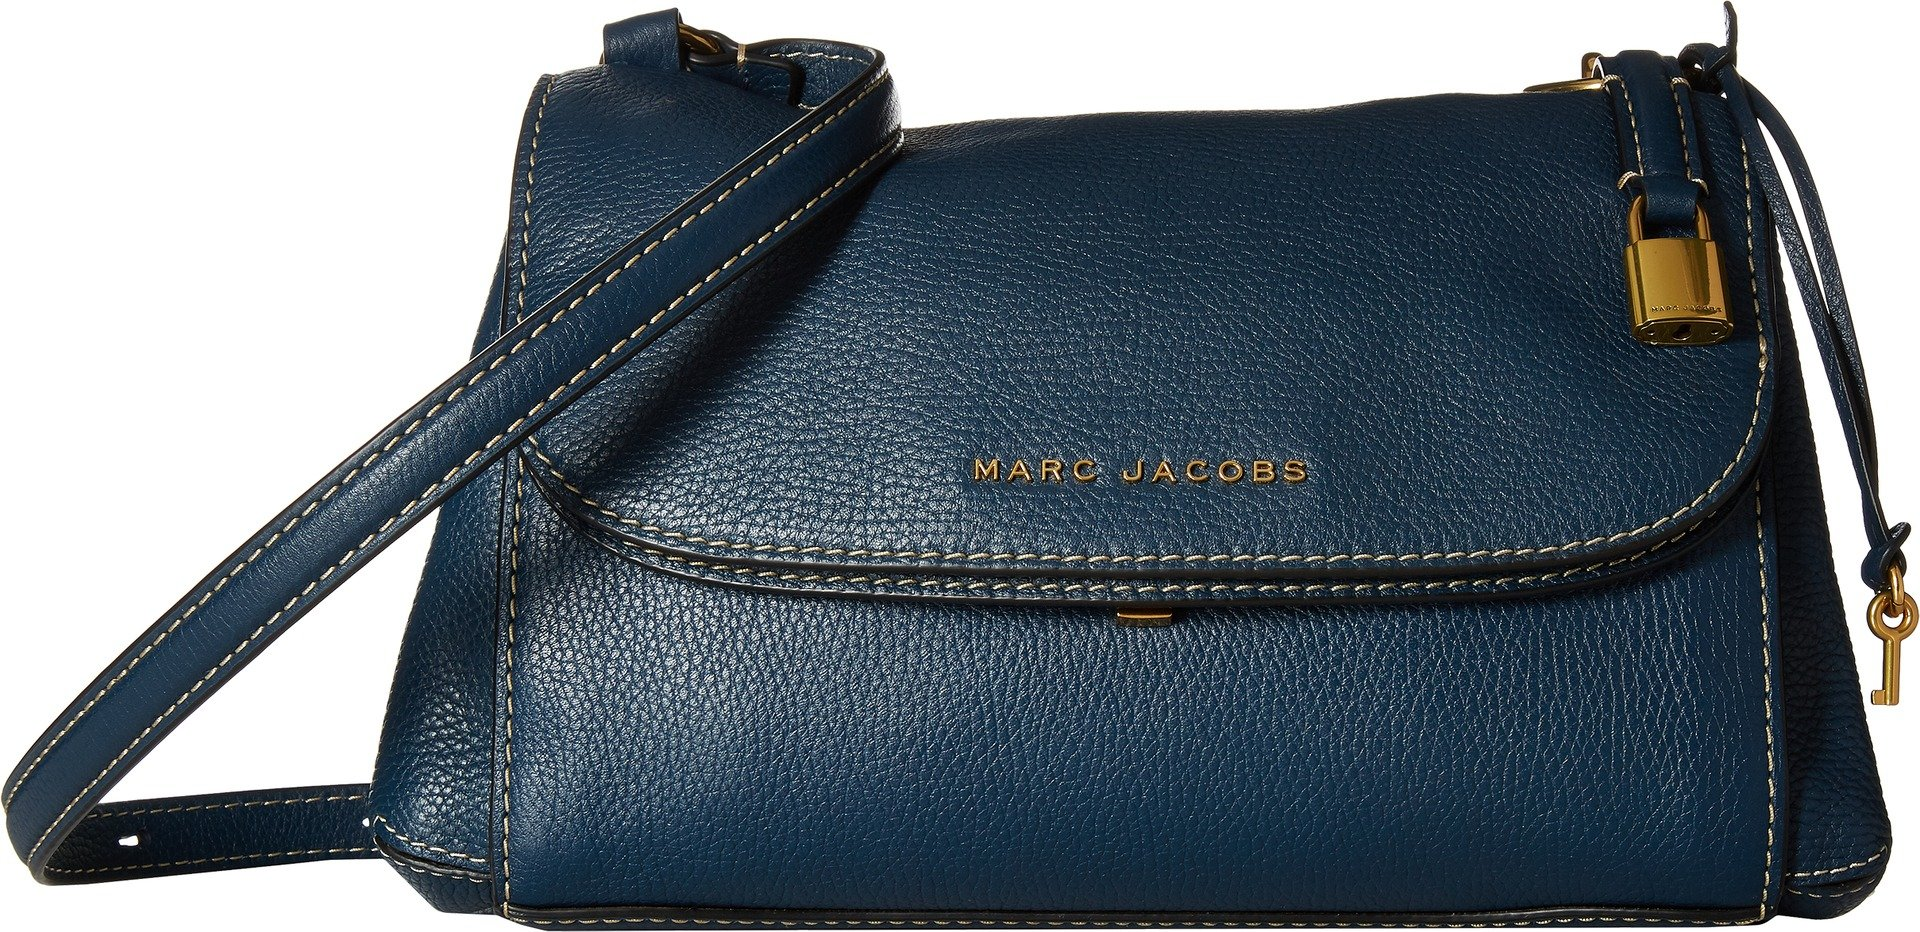 Marc Jacobs Women's Boho Grind Blue Sea One Size by Marc Jacobs